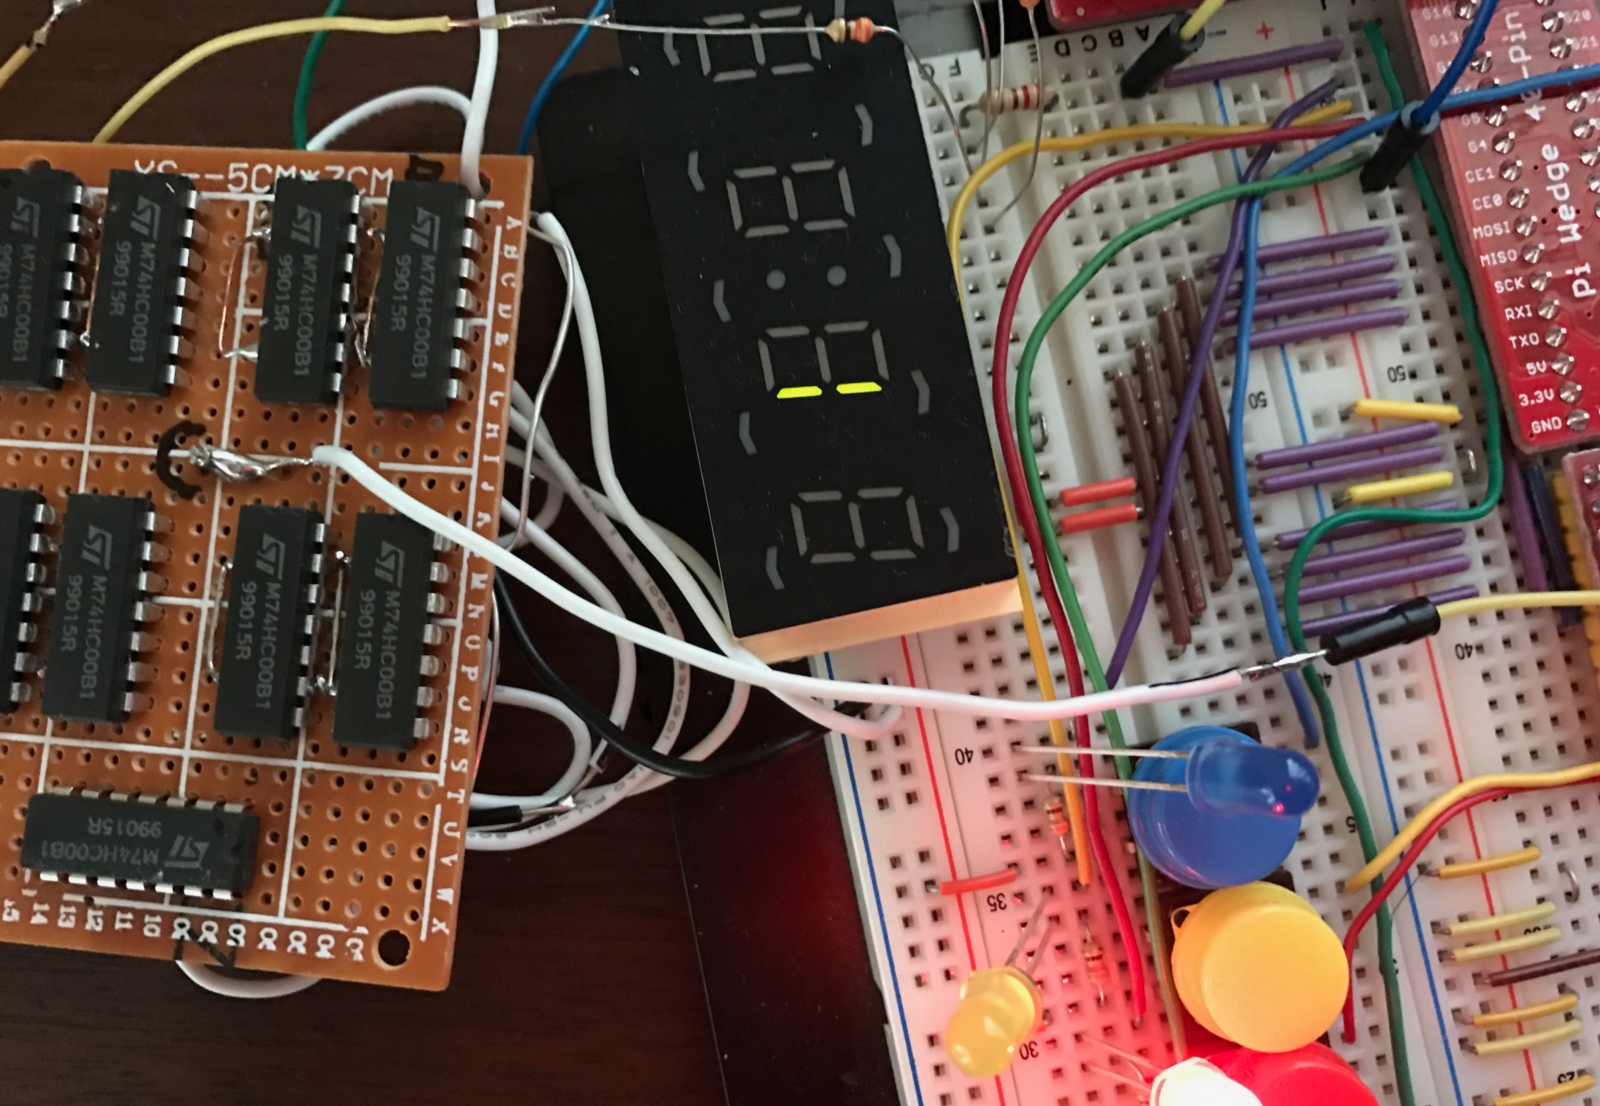 Building A 4 Bit Shift Register From 7400 Nand Gates For Gpio Output 7 Segment Decoder Logic Diagram The Vertical Segments Are Lit Up In Bouncing Pattern